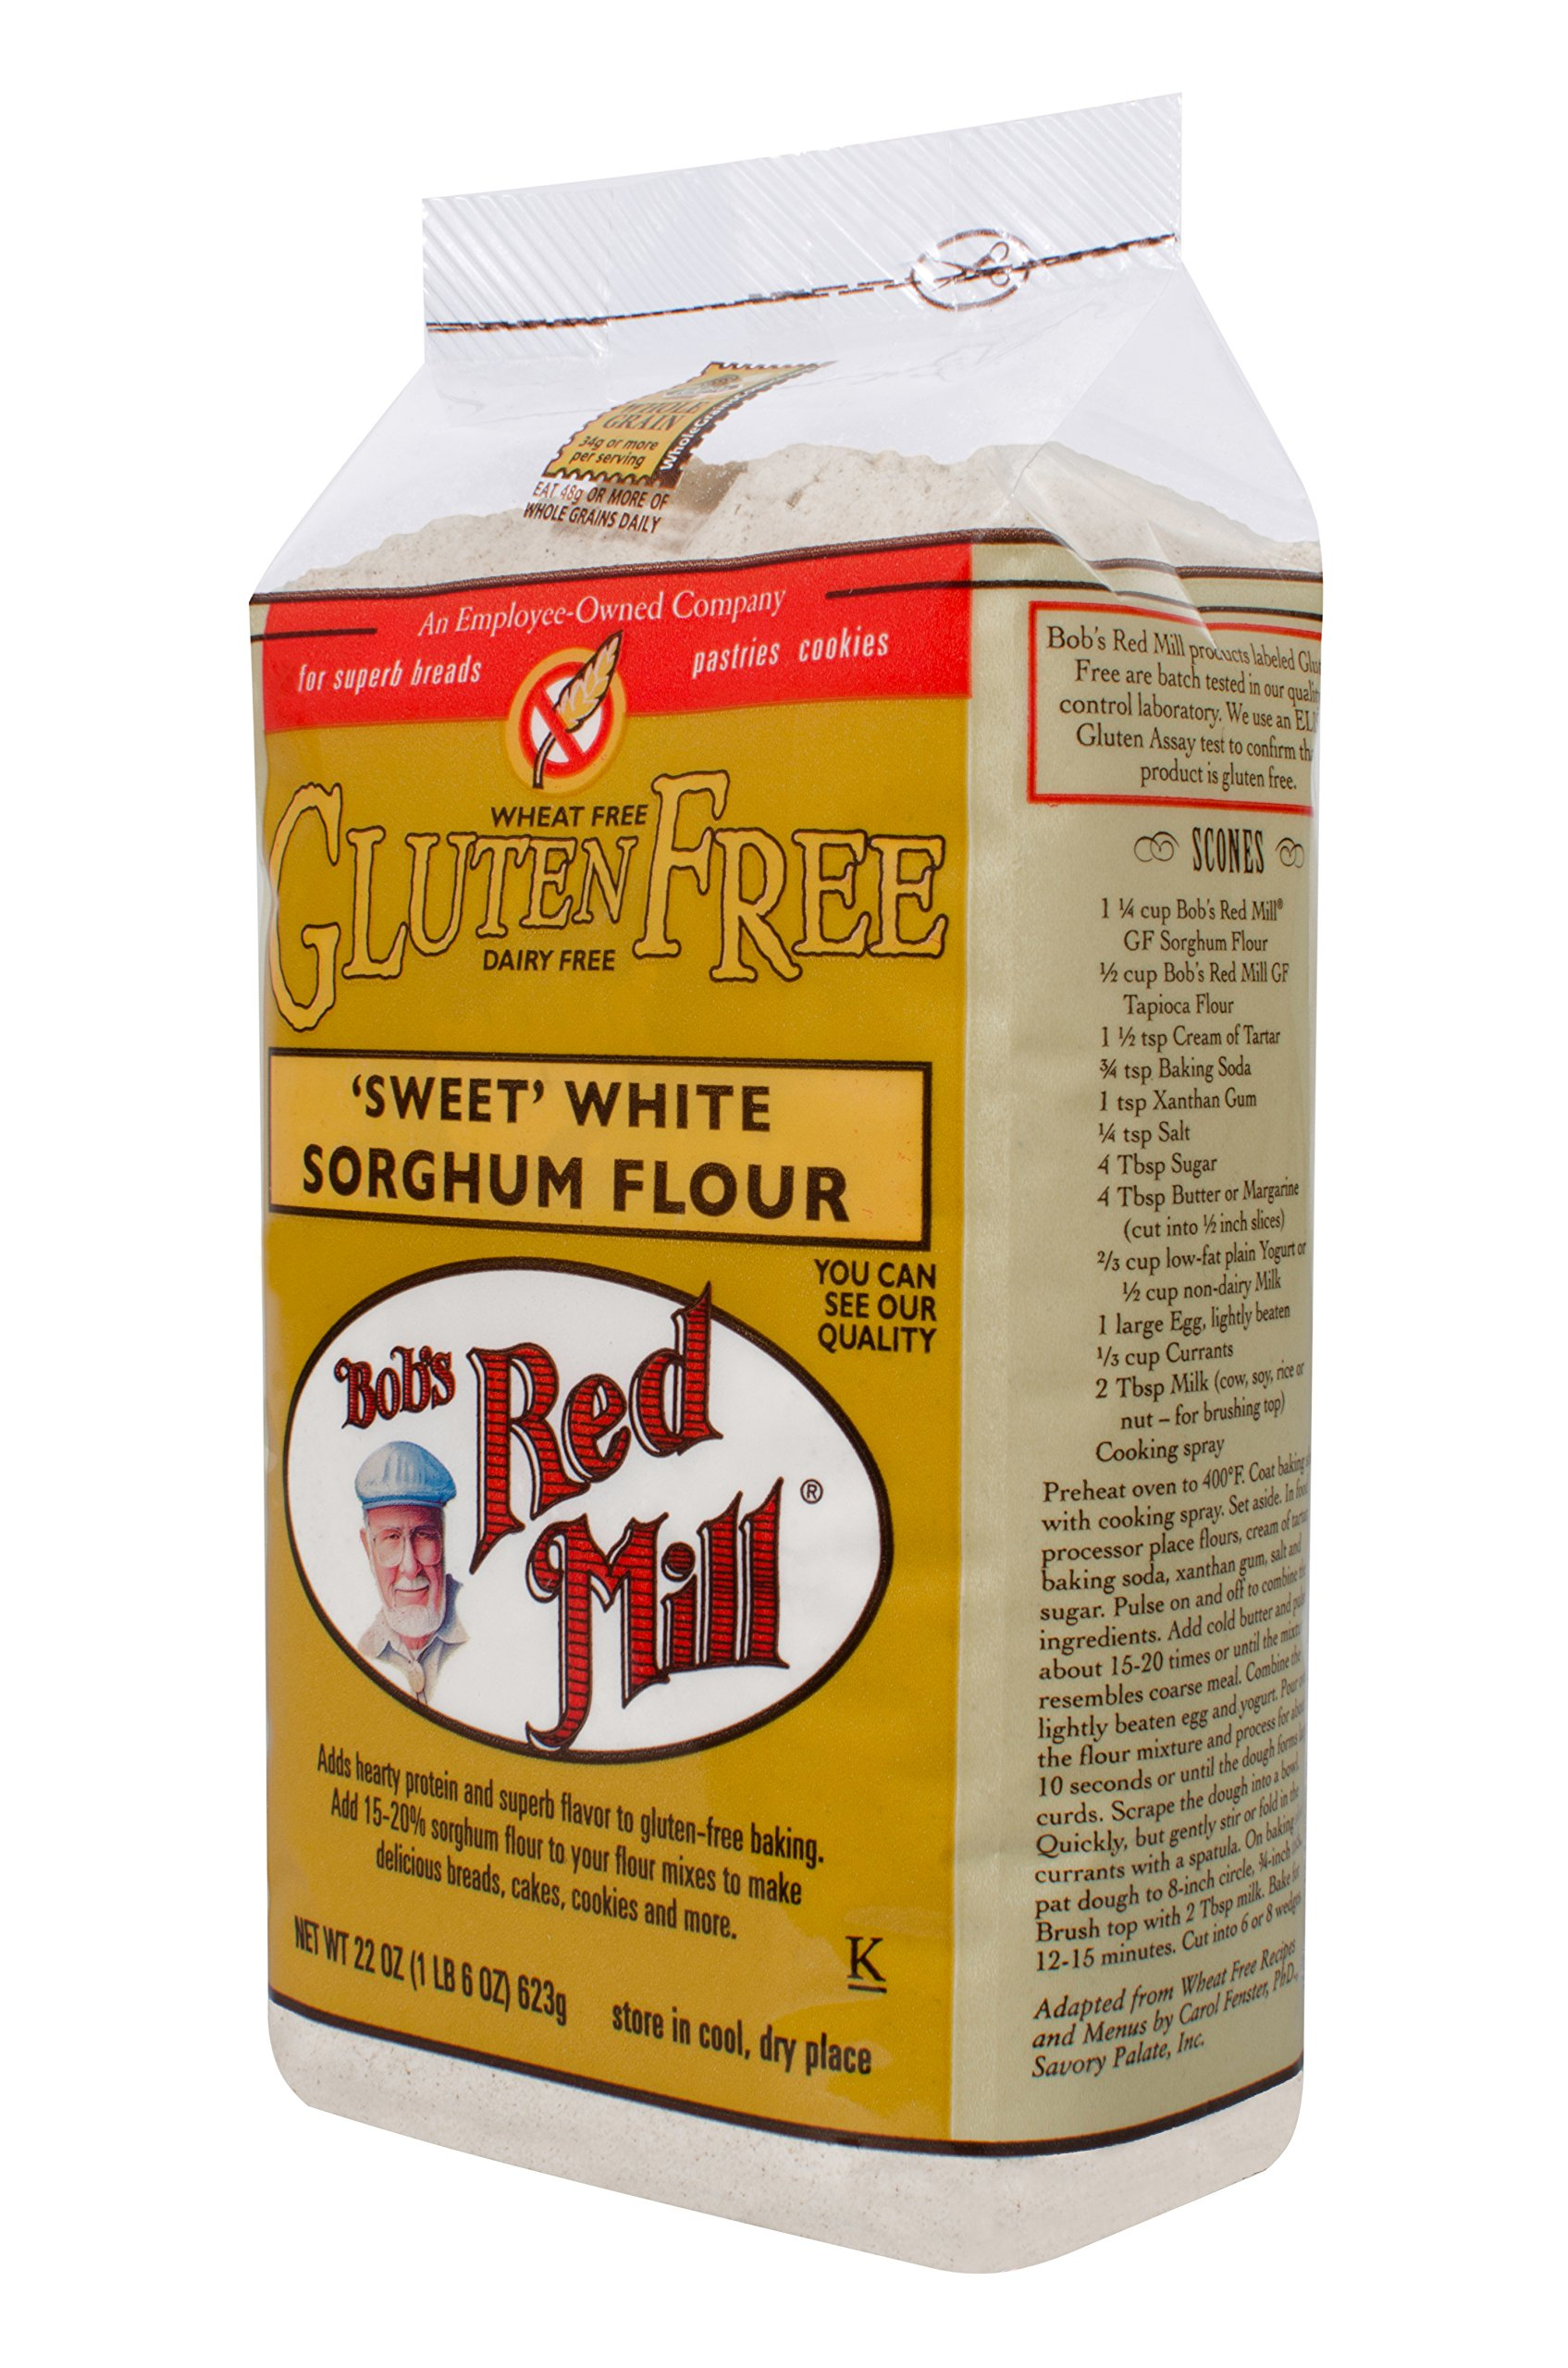 Bob's Red Mill - Gluten Free Sweet White Sorghum Flour, 22 Ounces (Pack of 4) by Bob's Red Mill (Image #3)